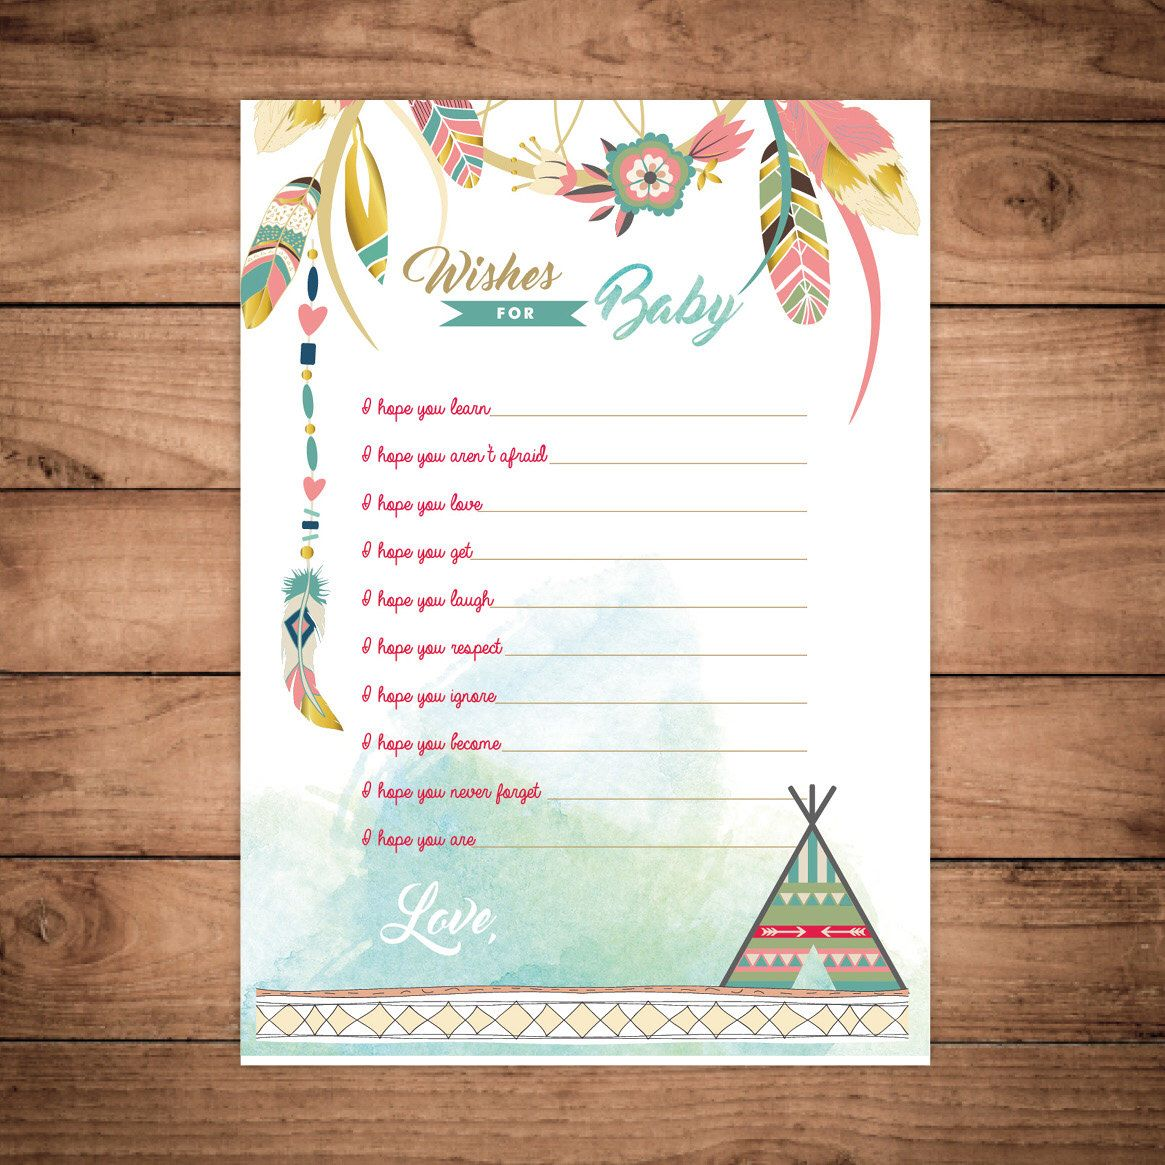 Dreamcatcher Boho Baby Shower Printable Wishes For Coaca Invitation Feathers Bohemian Dream Catcher Watercolor By